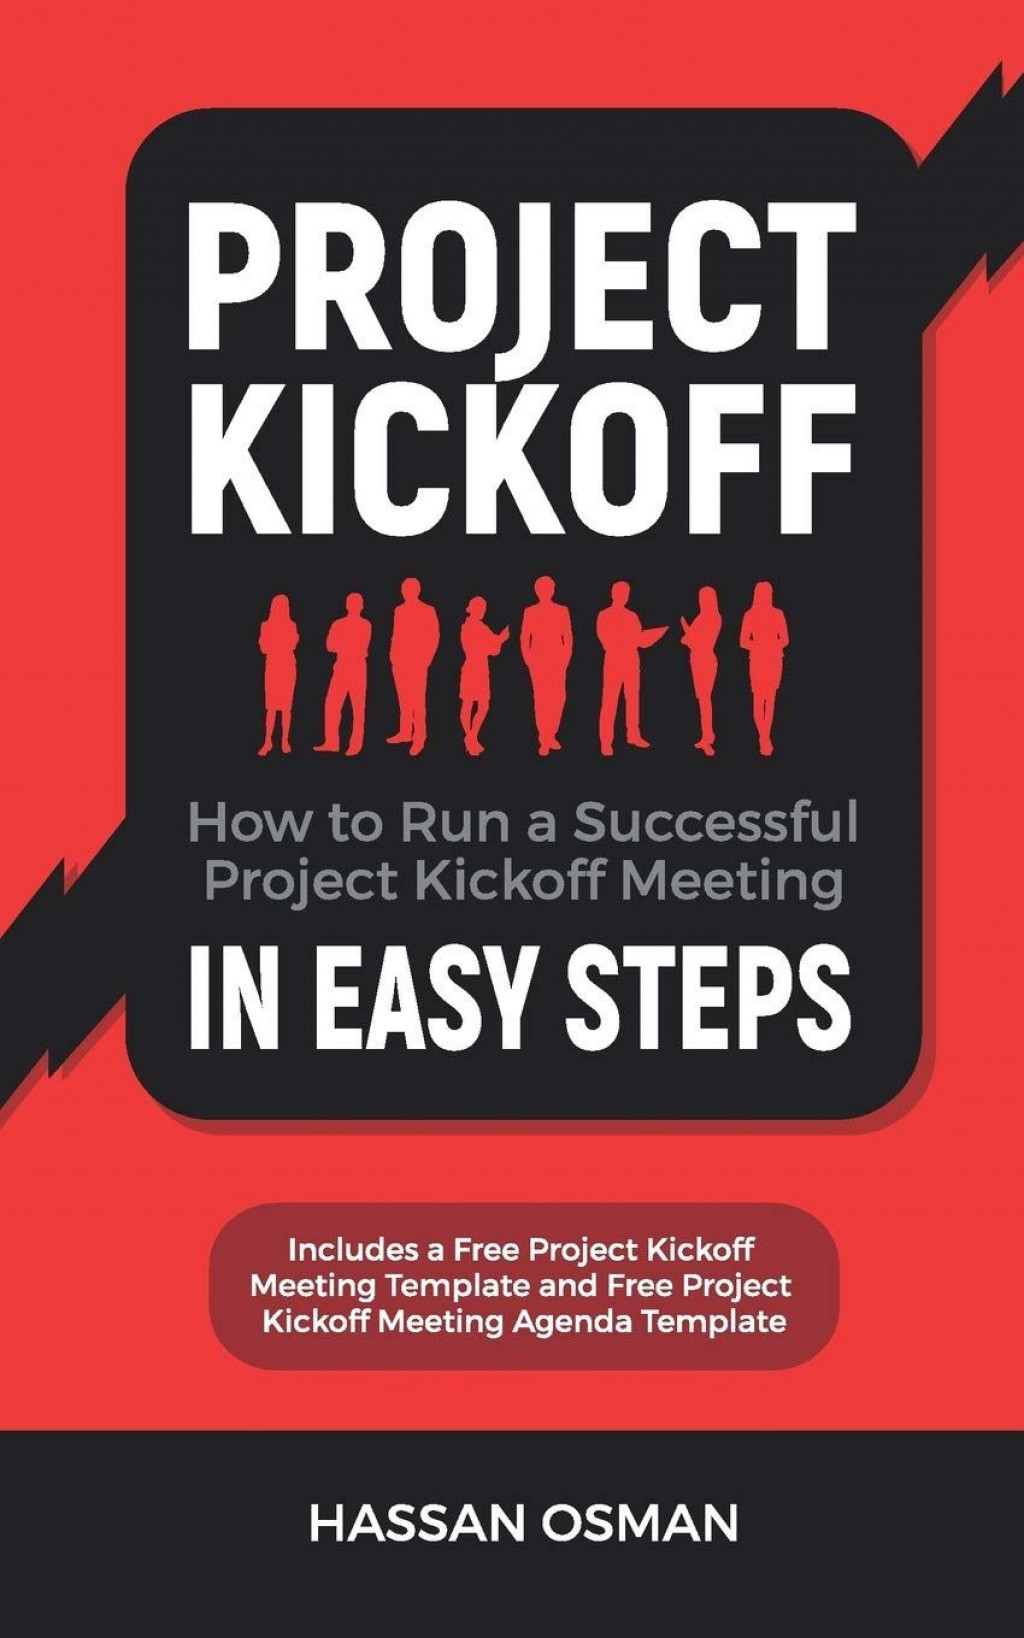 004 Impressive Project Kickoff Meeting Template Ppt Photo  Free Kick Off ManagementLarge